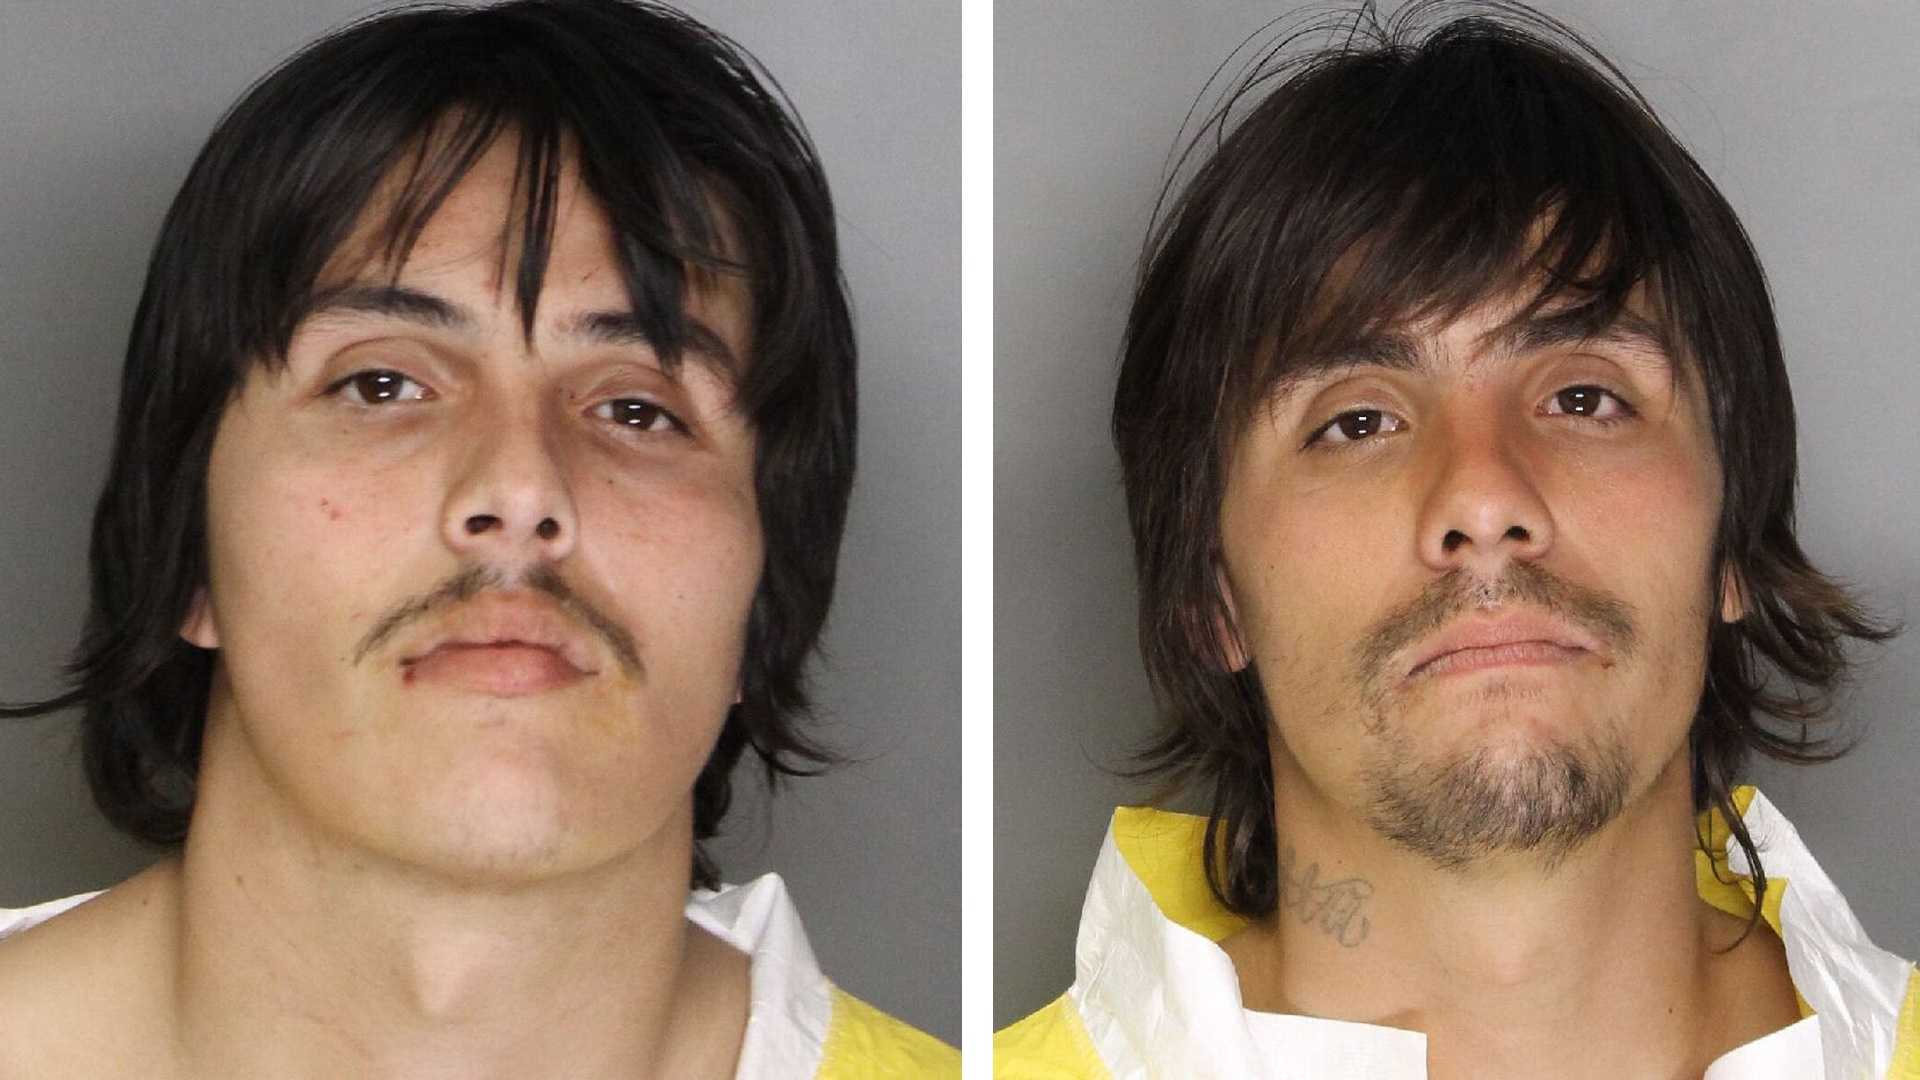 Cody Martinez (L) and Kevin Martinez (R) were arrested on Monday, Feb. 29, 2016, in connection to the stabbing and wounded their parents, the Sacramento Police Department.